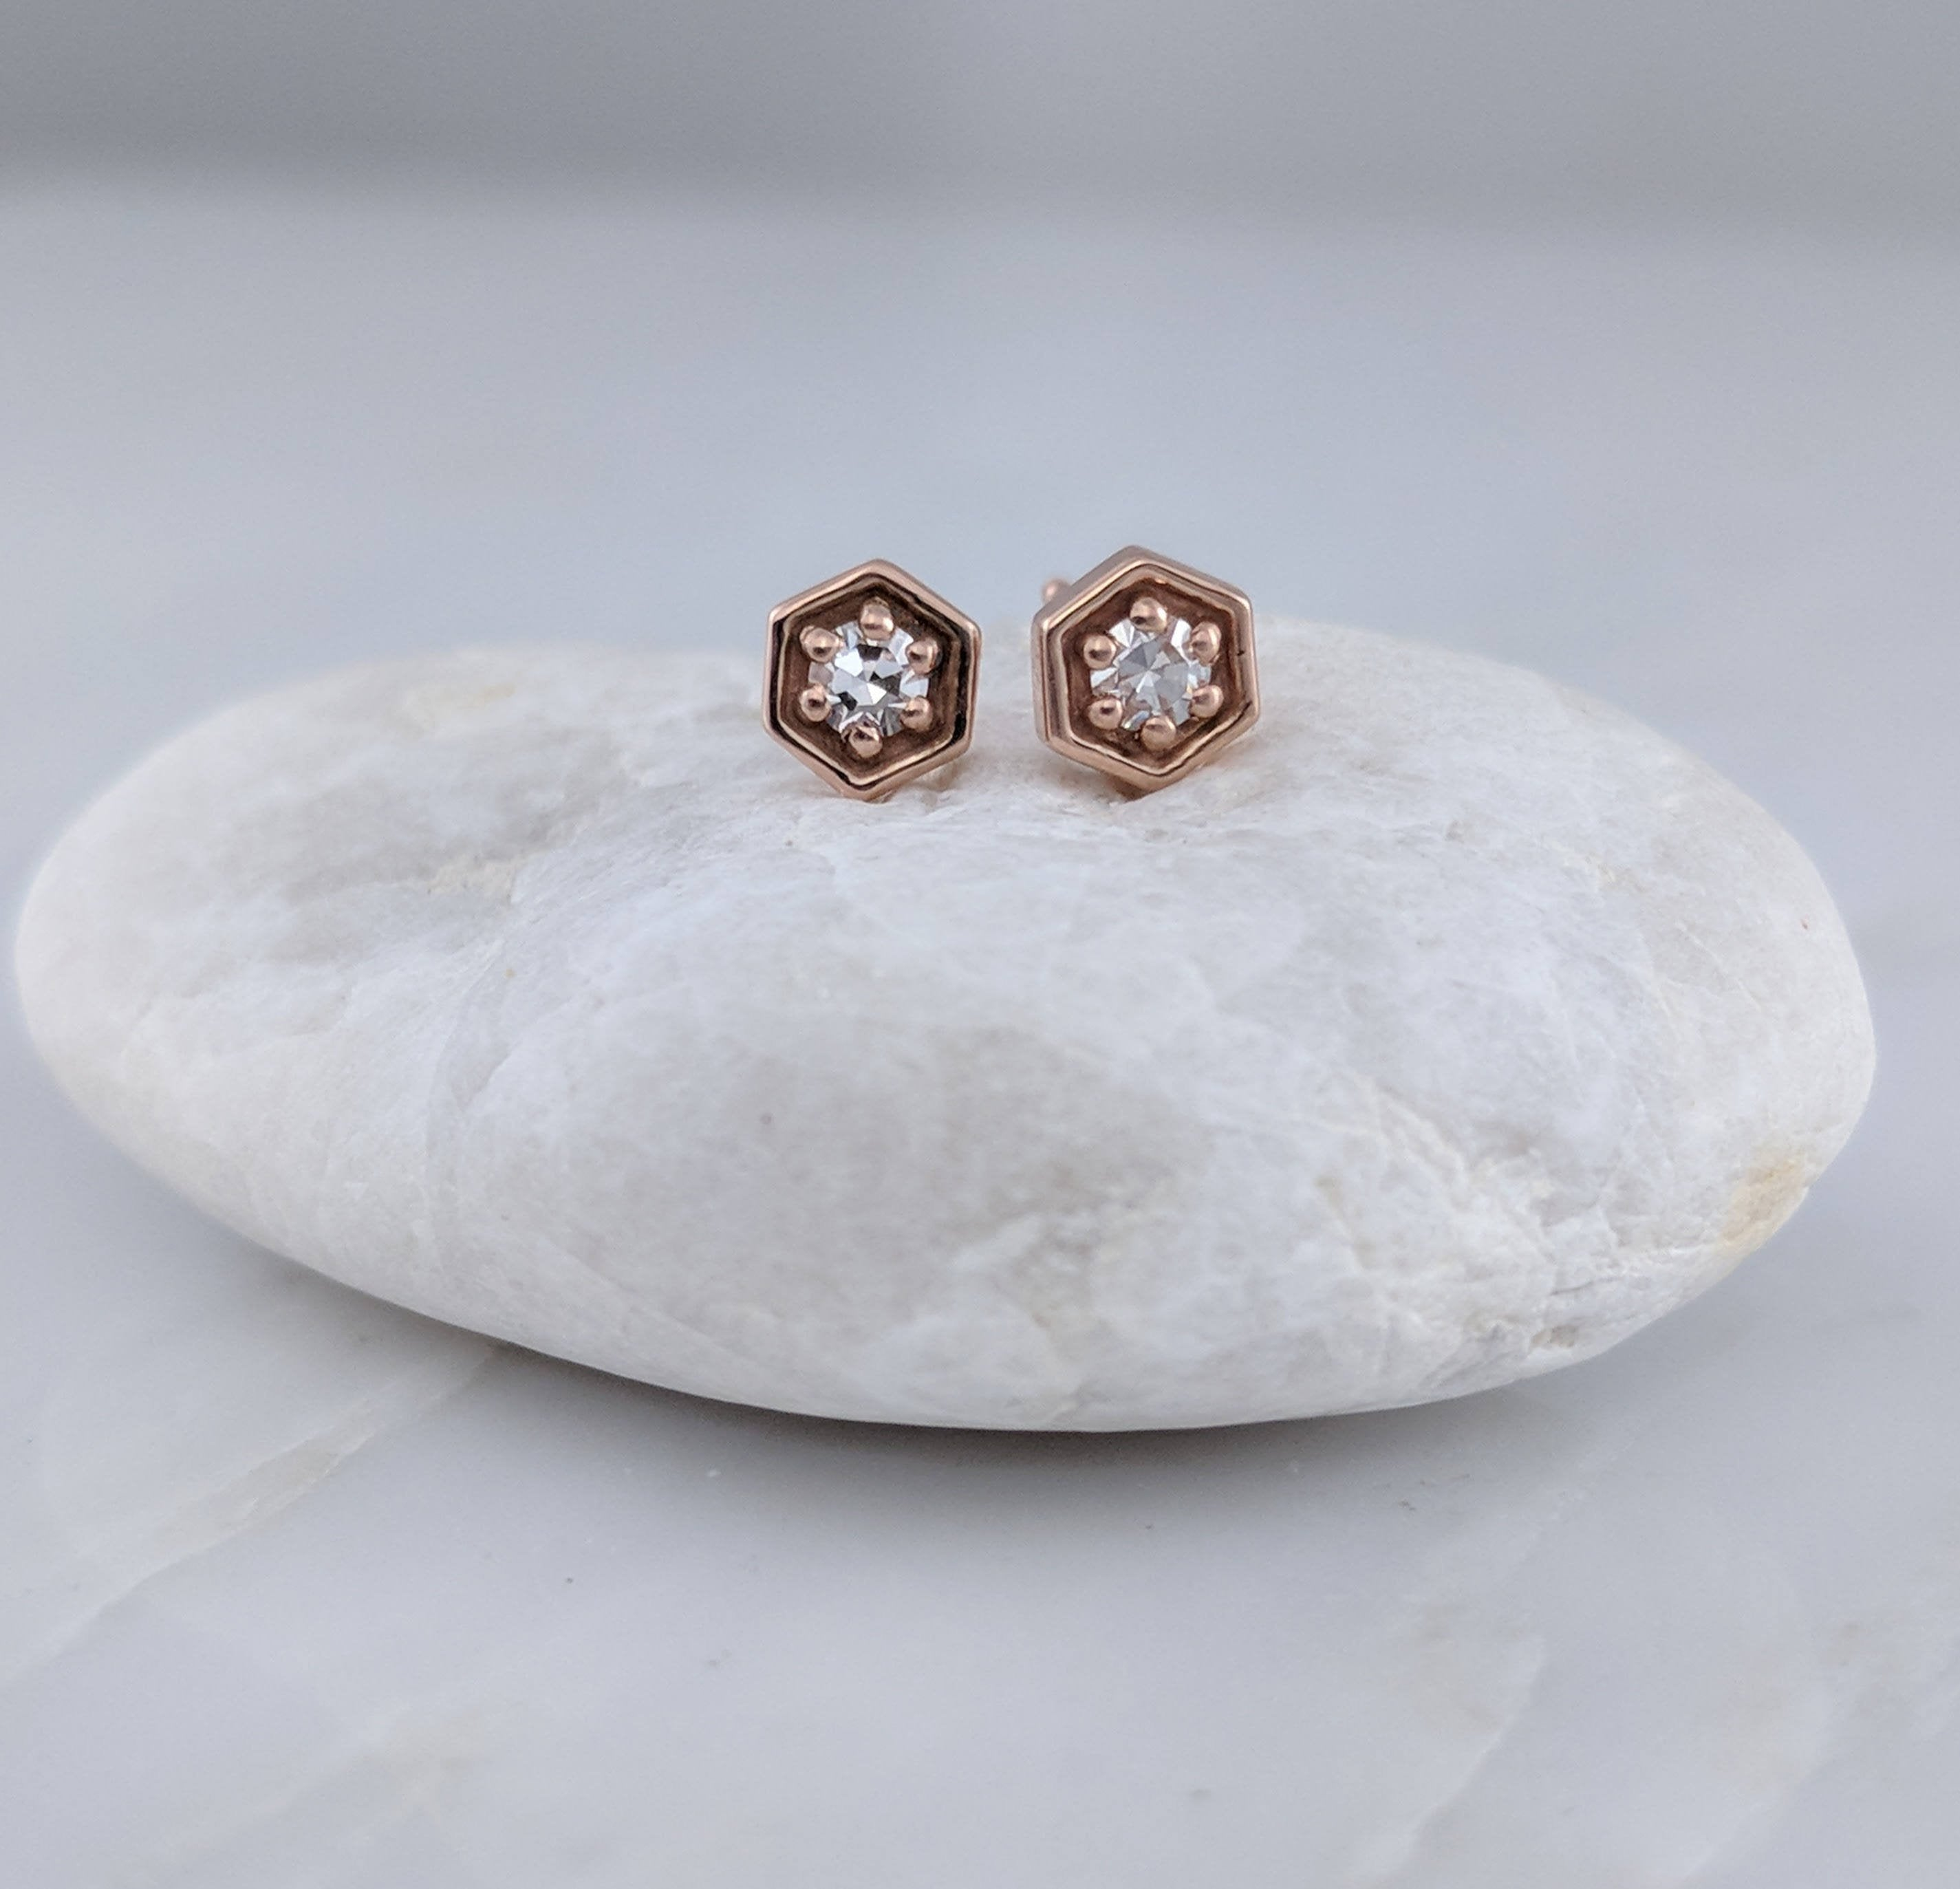 Tiny Diamond Hexagon Stud Earrings in 14K Rose Gold